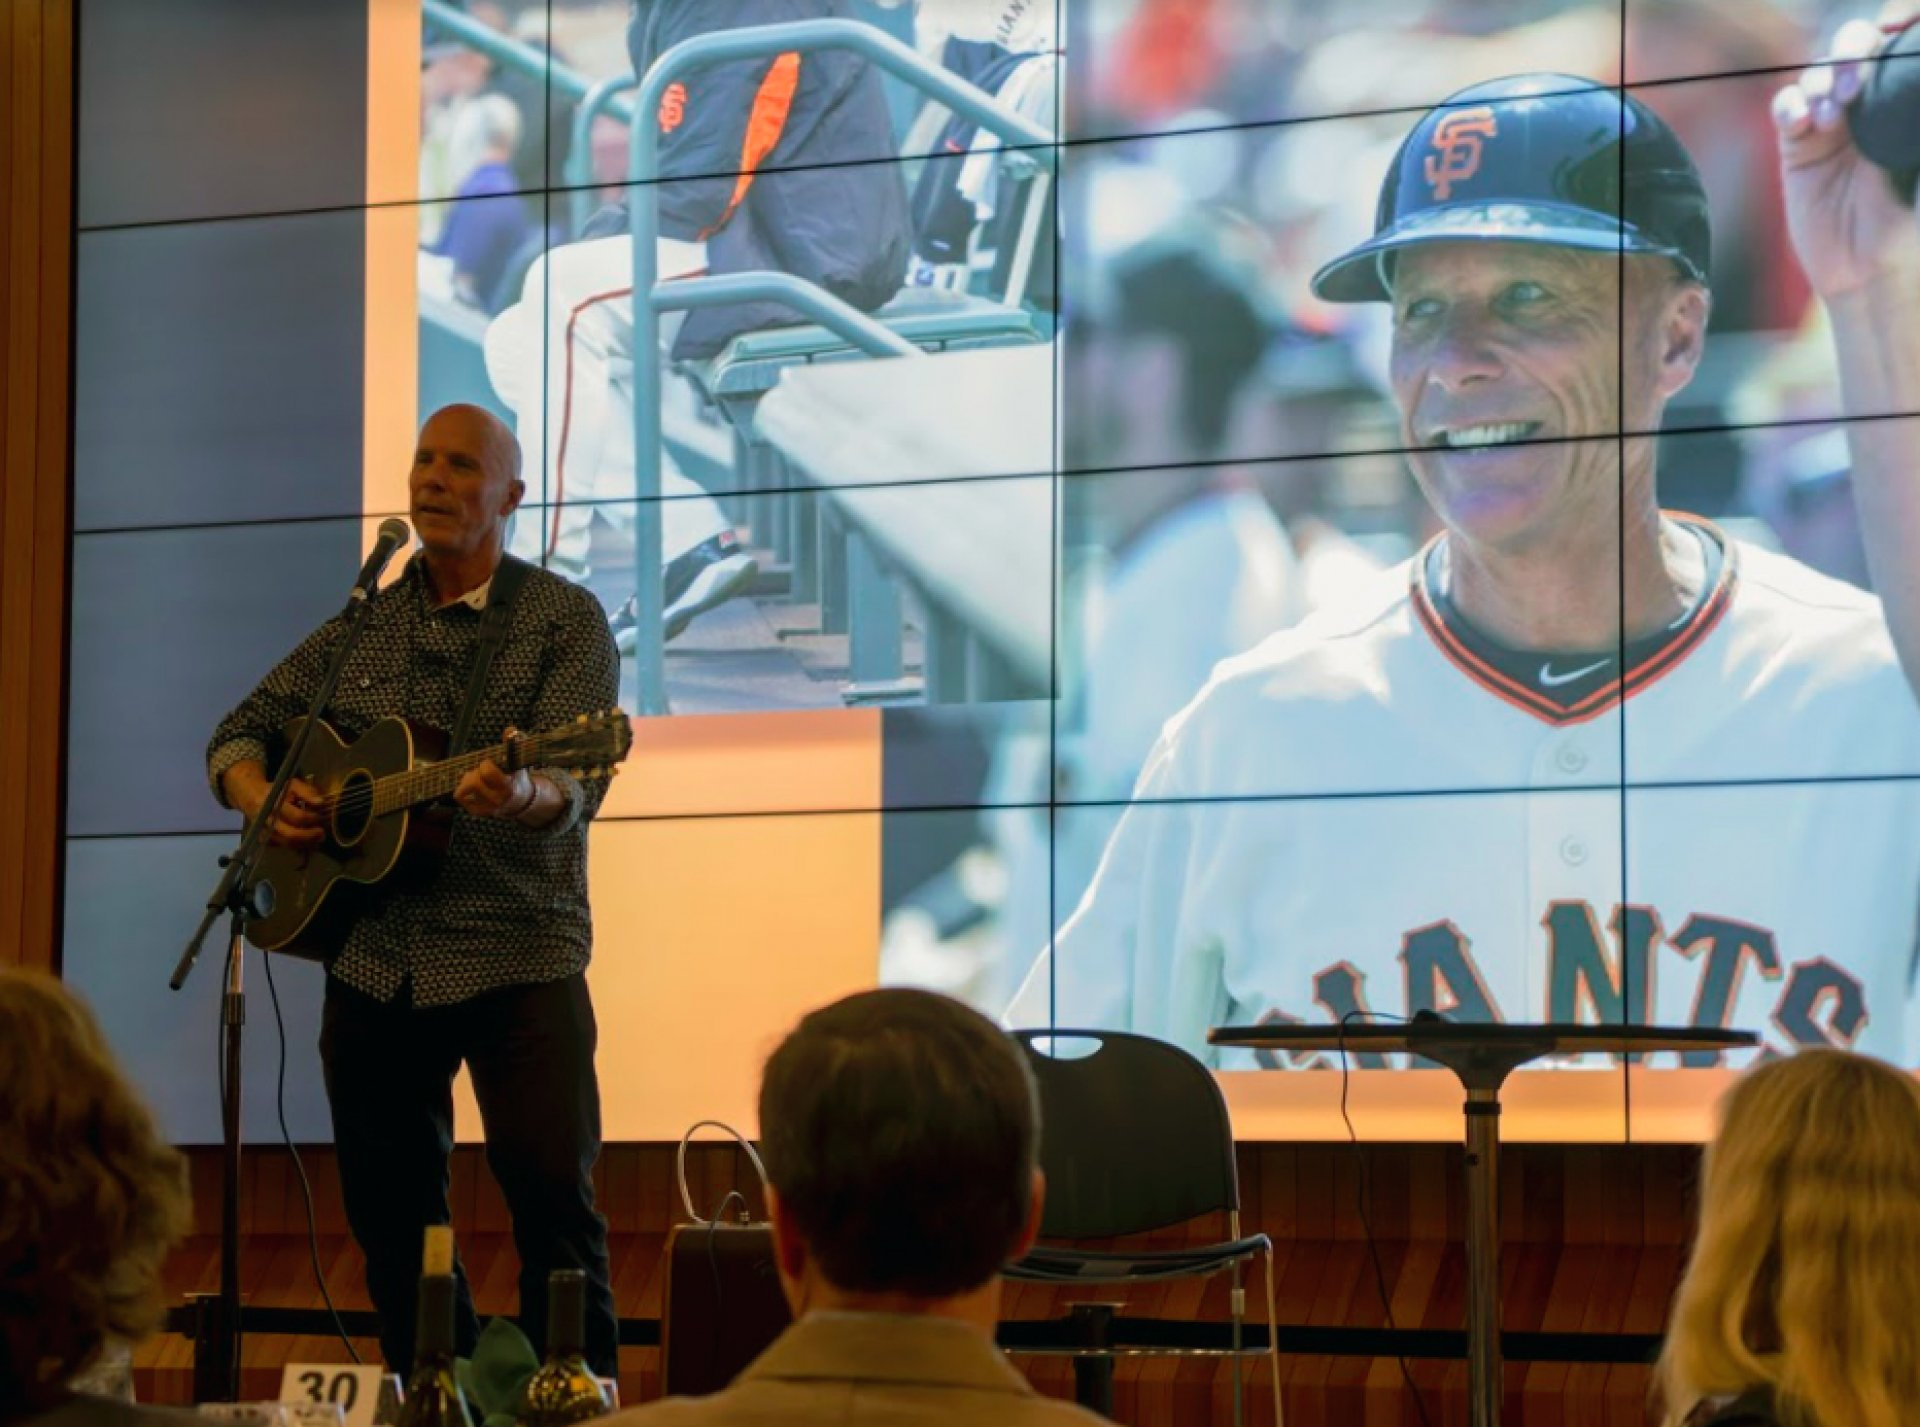 Former major leaguer Tim Flannery kept the crowd engaged with two singing performances and stories from his more than 25 years in the MLB at the 33rd Annual Celebrity Sports Dinner and Auction on April 14 in Eureka. Photo by Gabe Rivera.